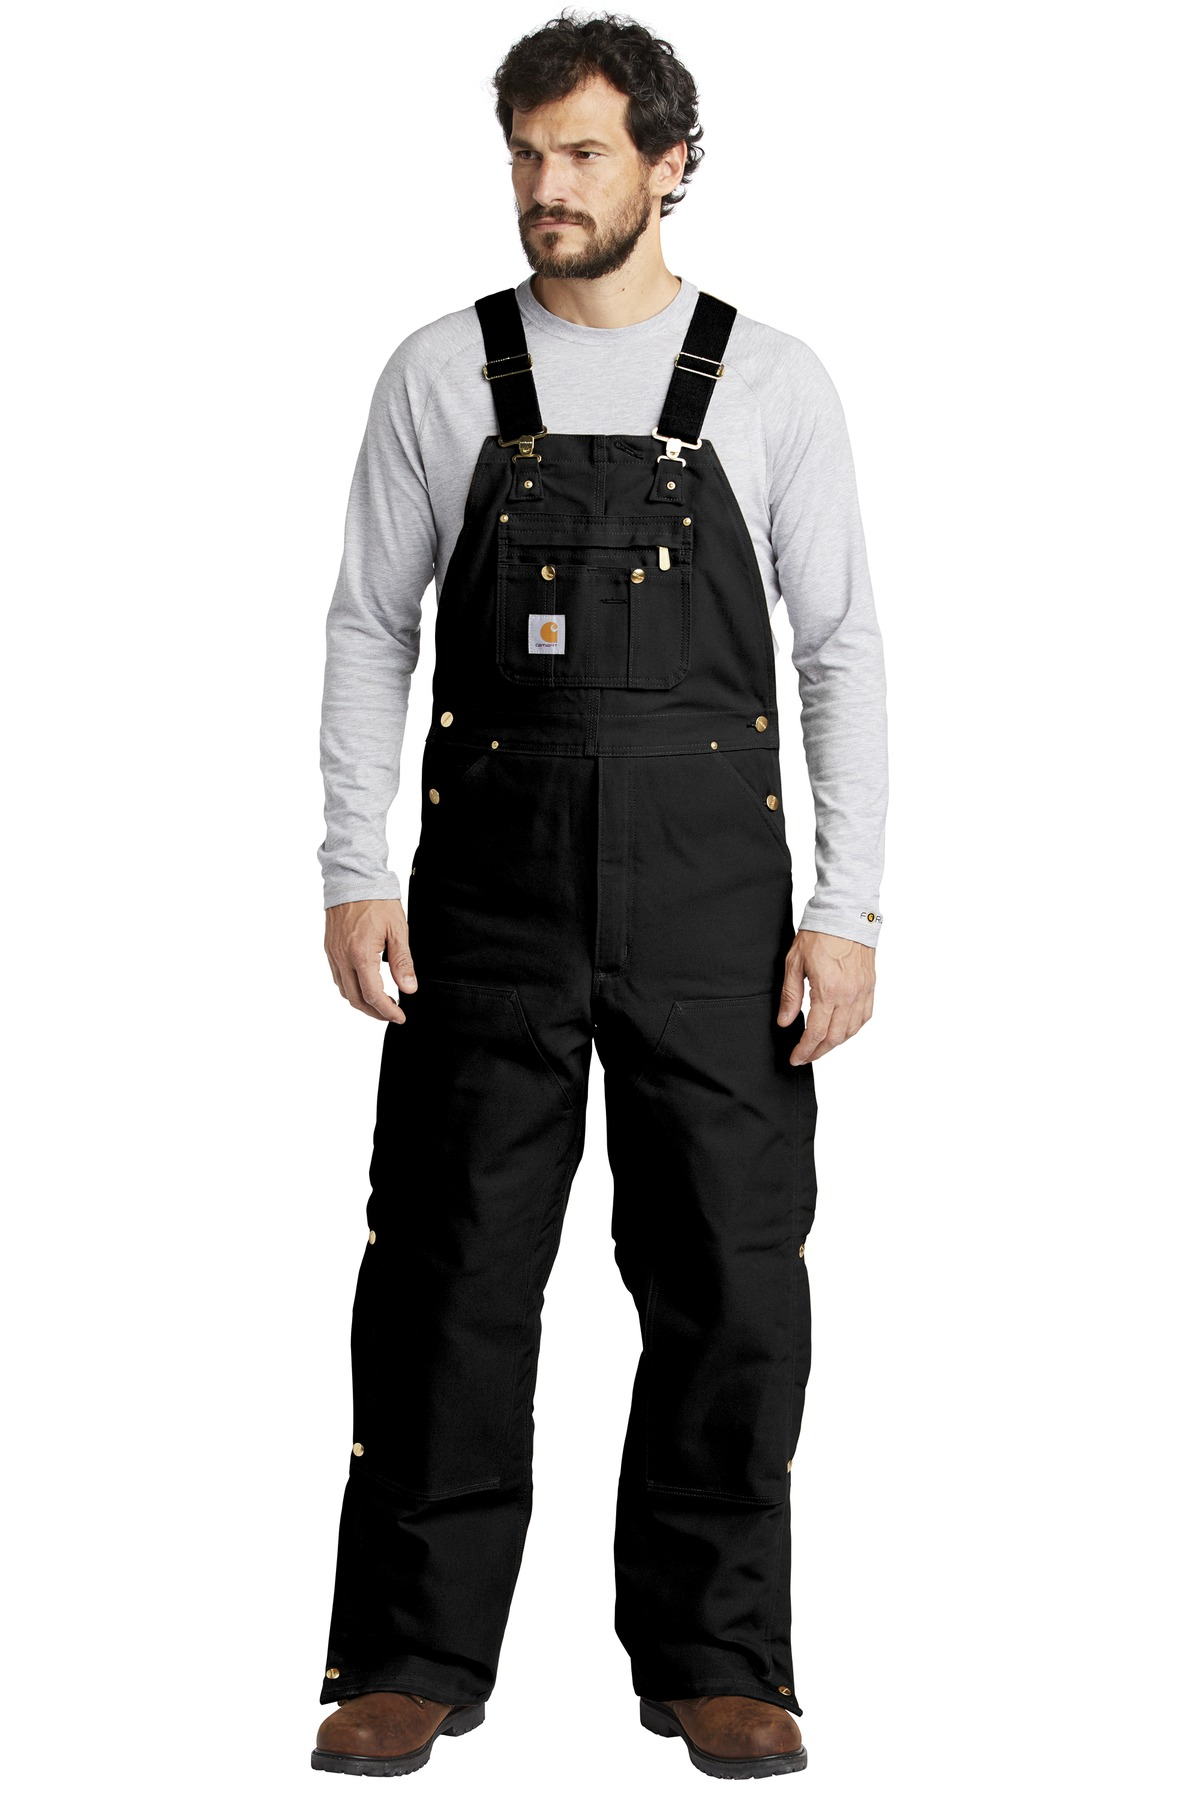 Carhartt  ®  Duck Quilt-Lined Zip-To-Thigh Bib Overalls. CTR41 - Black